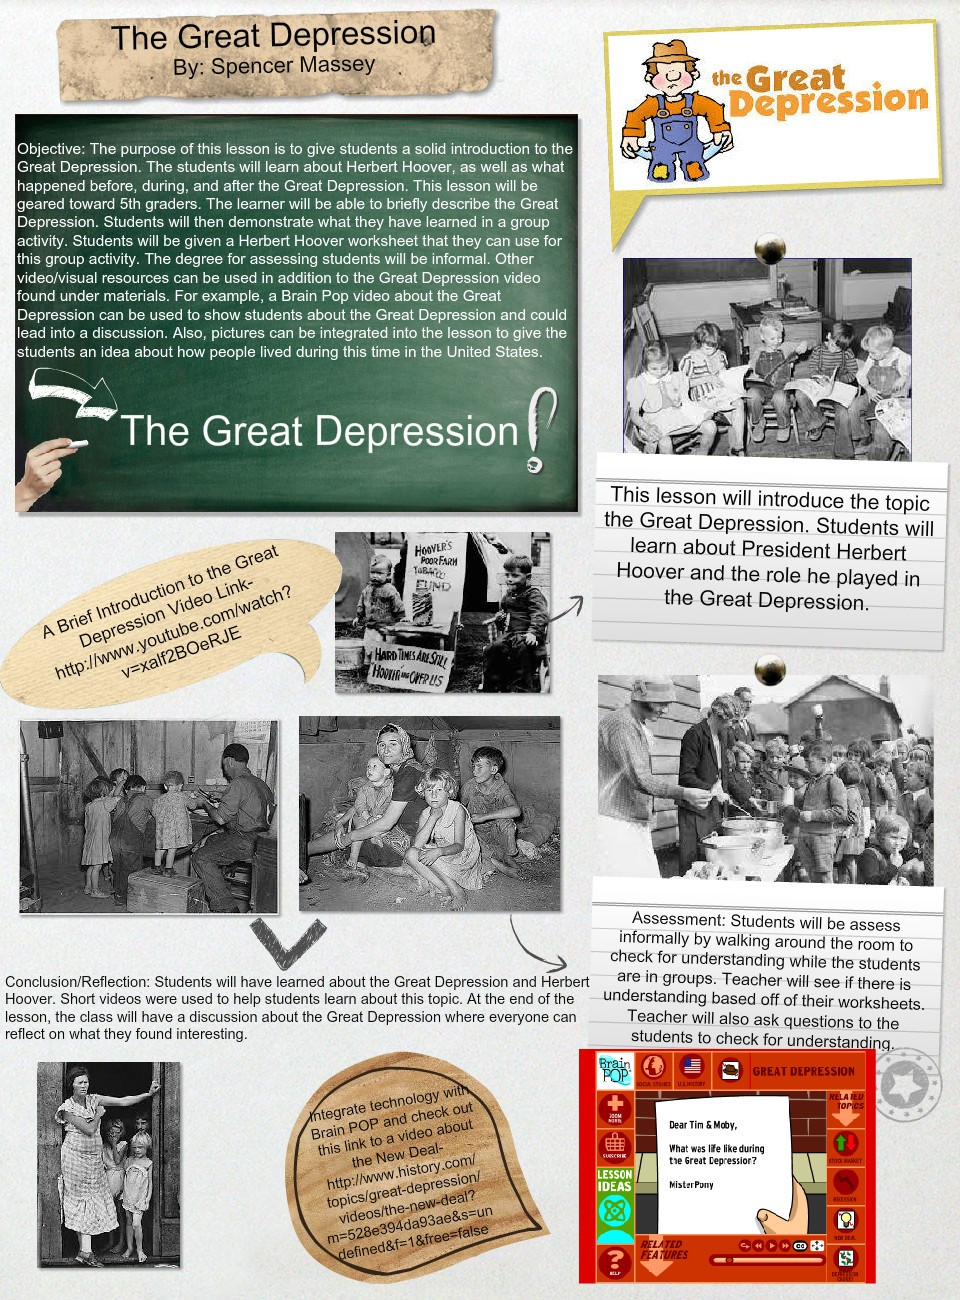 010 Conclusion Of The Great Depression Essay Example Amazing 960